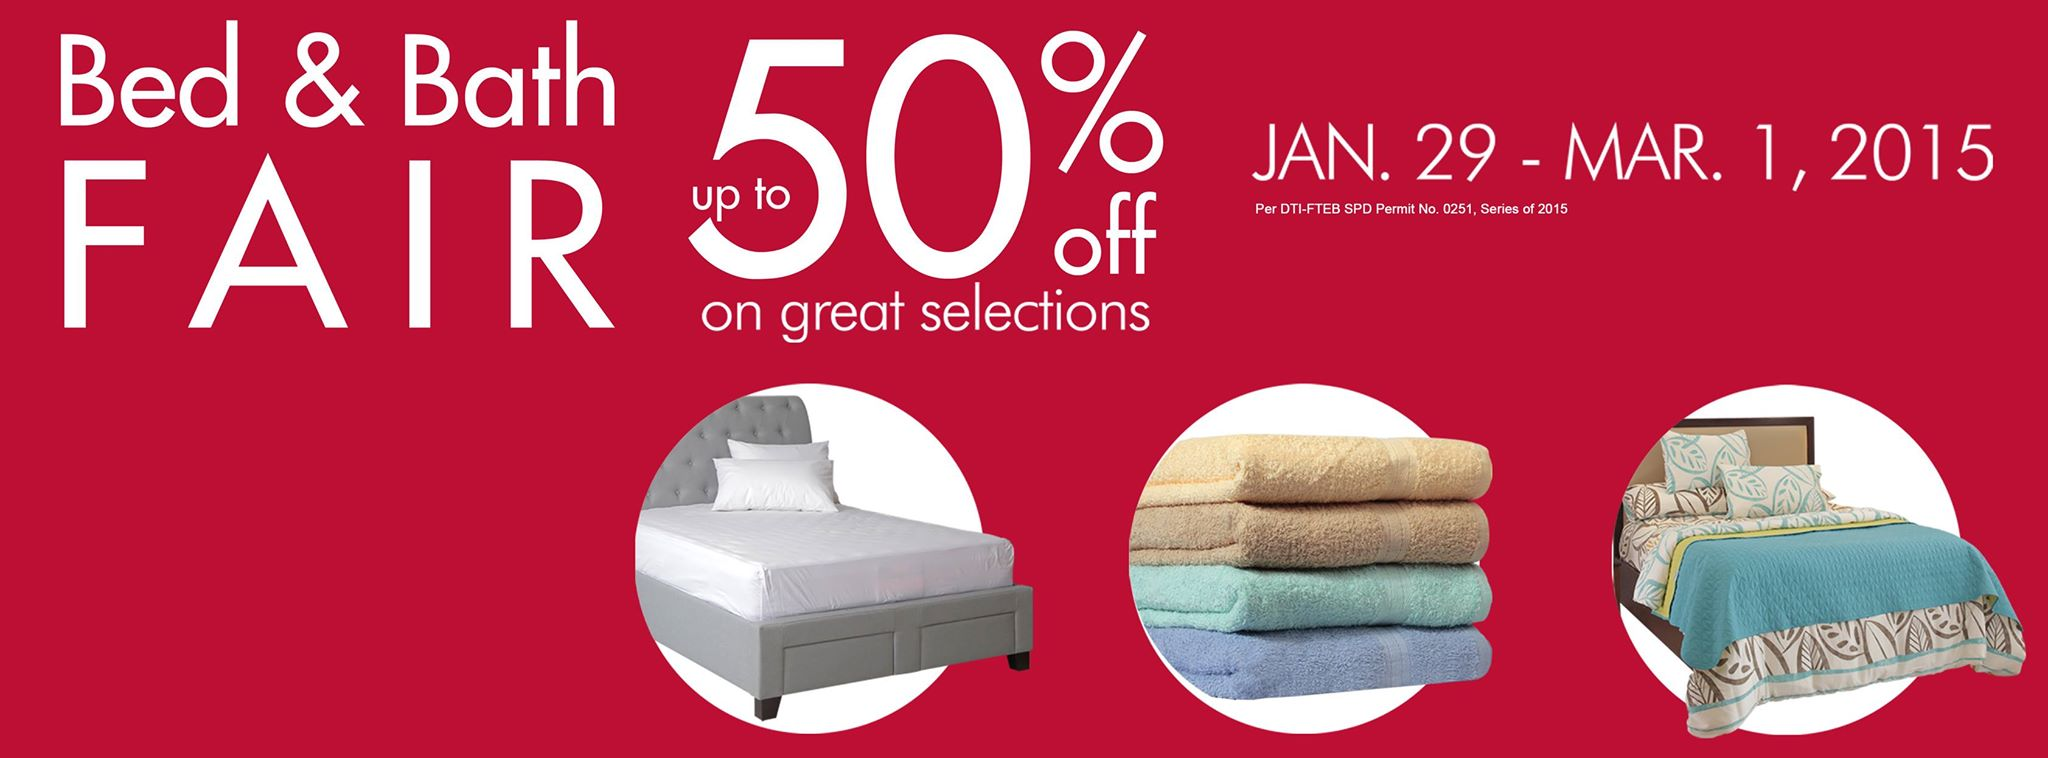 SM Home Bed & Bath Fair January - March 2015